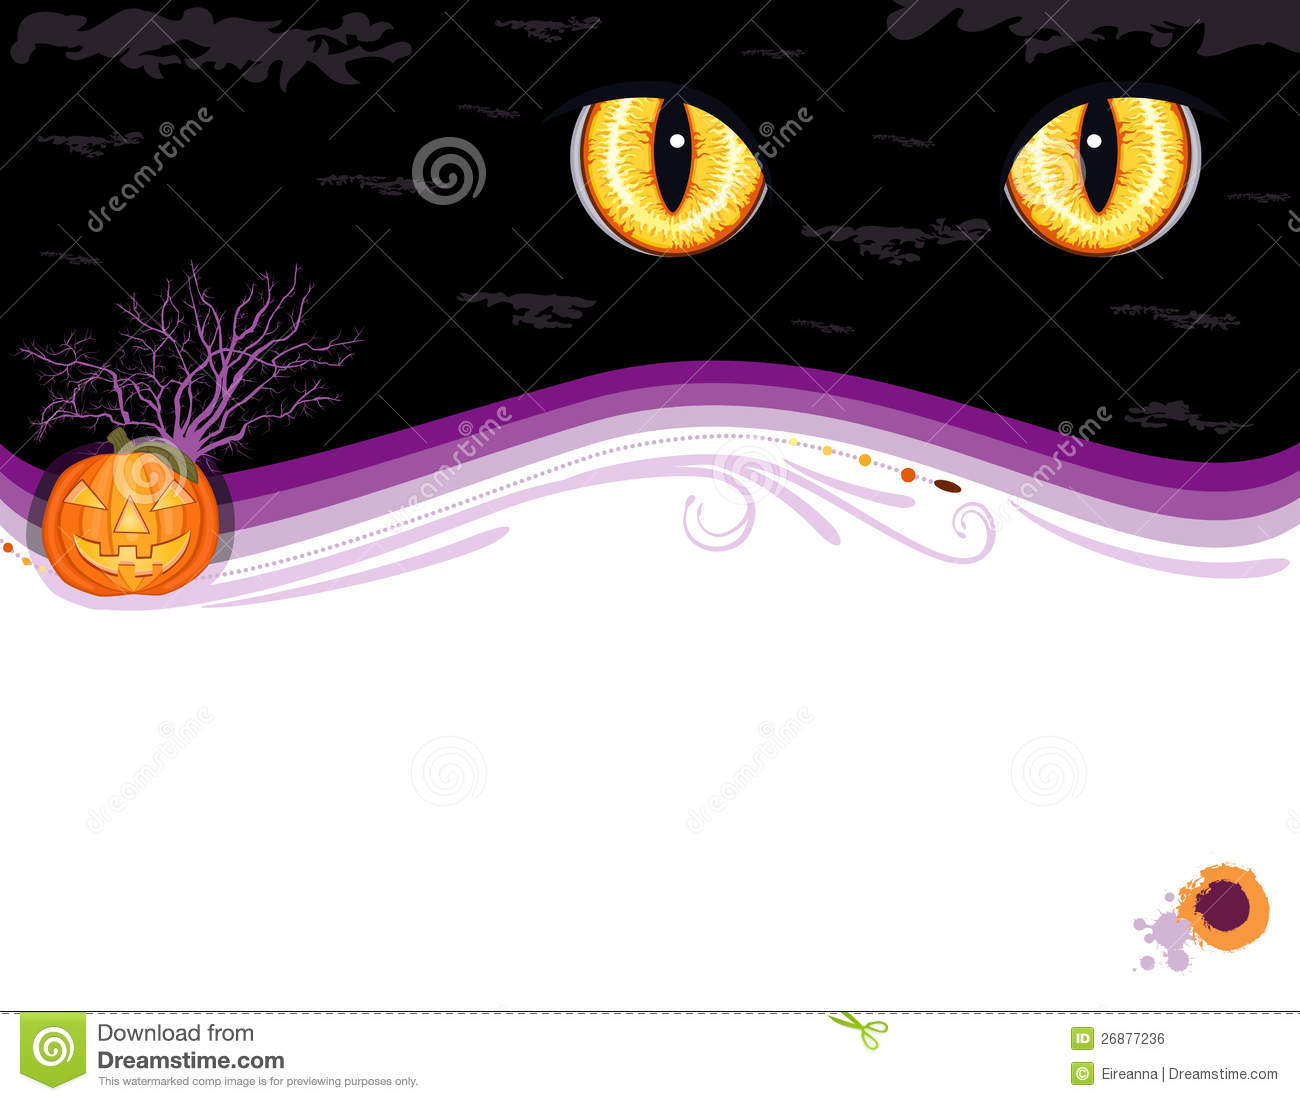 Grungy Halloween Party Invitation Card Royalty Free Image – Halloween Party Invitation Card